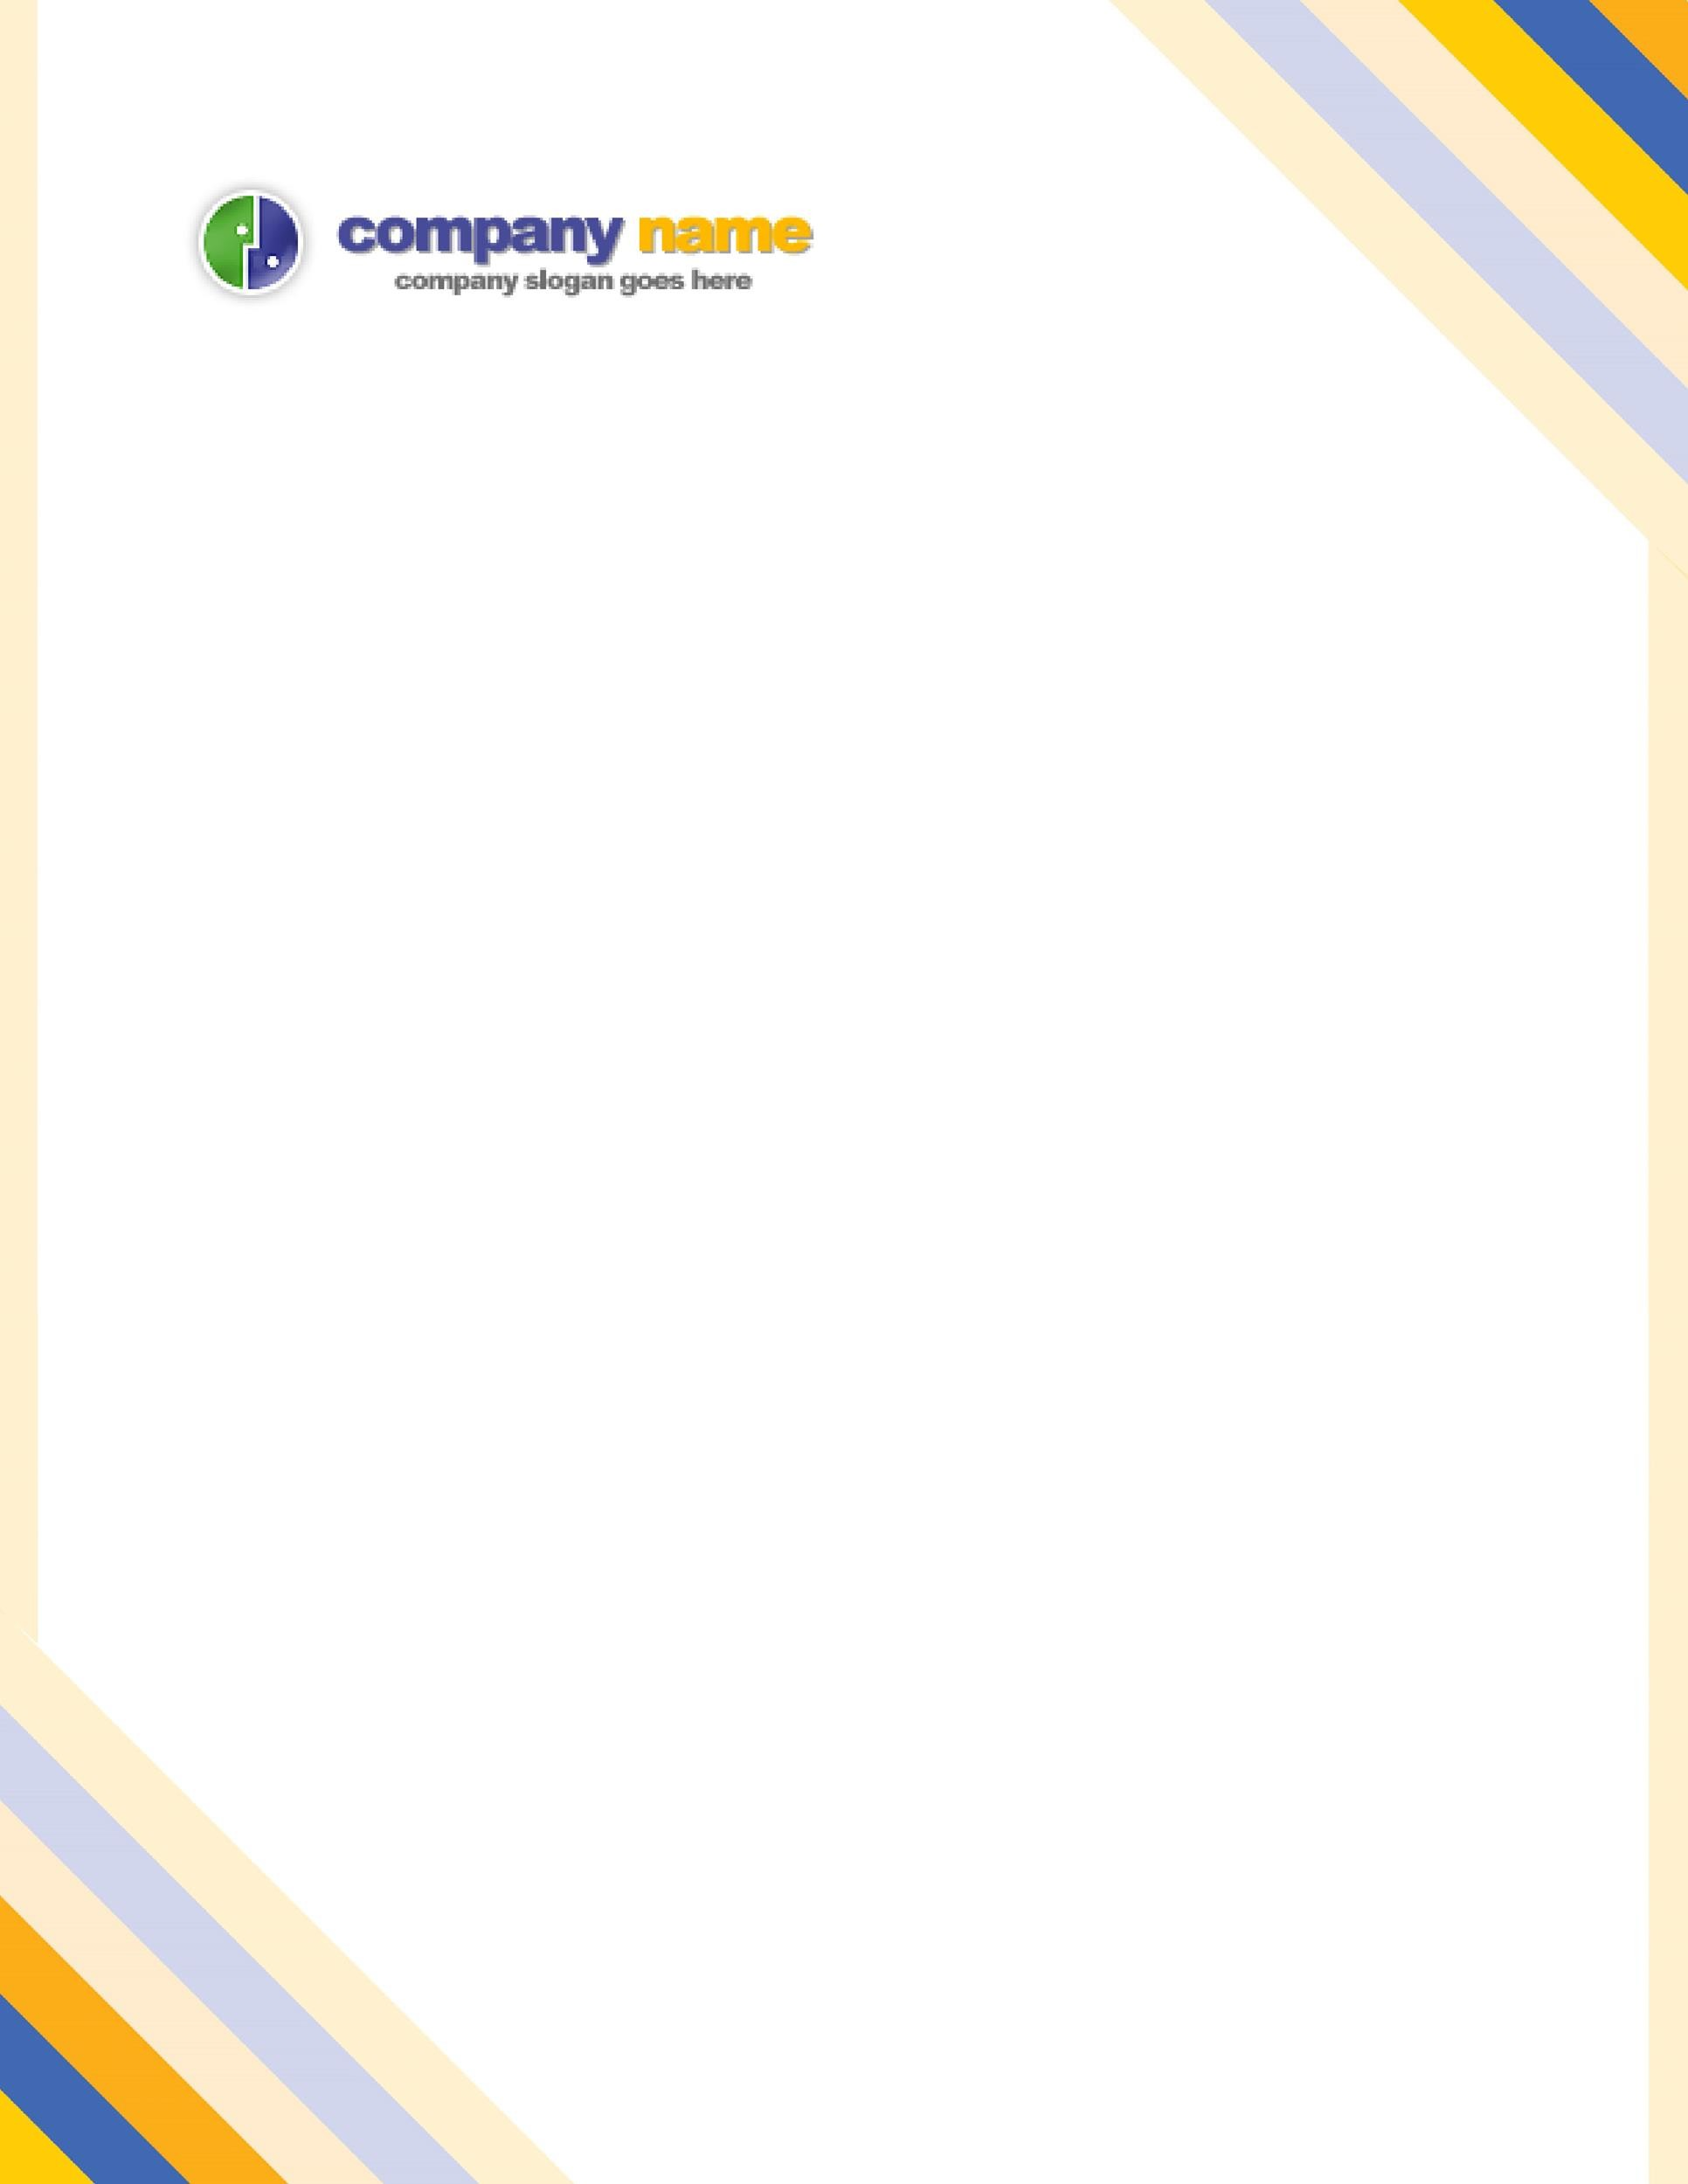 Lovely Printable Letterhead Template 21 Idea Free Printable Letterhead Templates